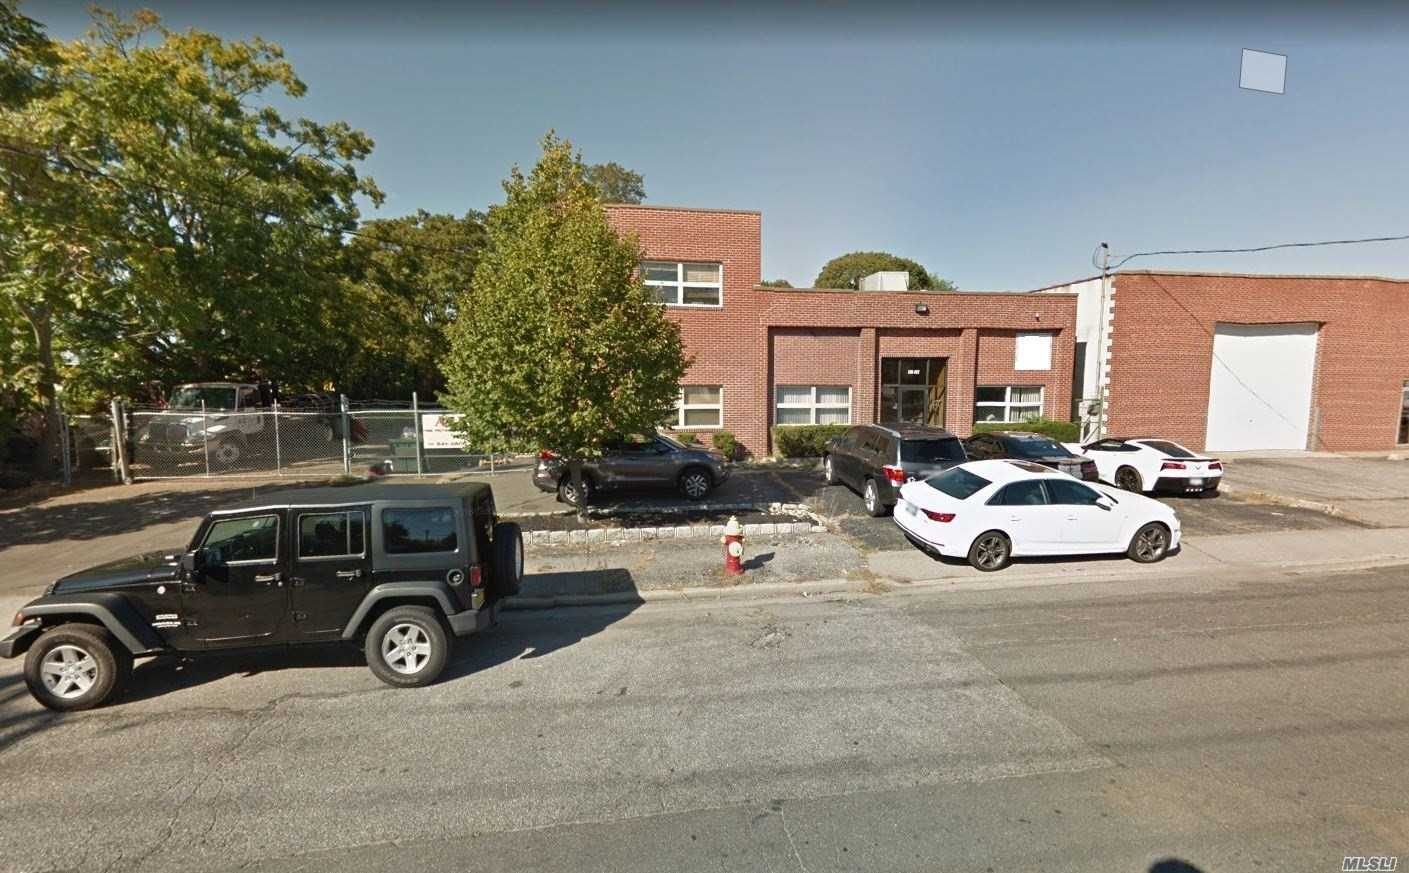 Unique Opportunity To Rent A 2 Story Huge 8, 000 Sq. Ft. Brick Office Bldg In Prime Area With Additional Yard (50 X 188). Currently Has 6 Offices, Conference Room, Kitchen & 3 Bths, 2 Bays 15 Ft. High With Roll Ups And Potential To Have 3 More. Basement And Attic Storage. Updated Heating System. Interior Fire Sprinkler System. 6 Parking Spots Alongside 50 X 188 Yard For Additional Parking. Triple Net Lease.